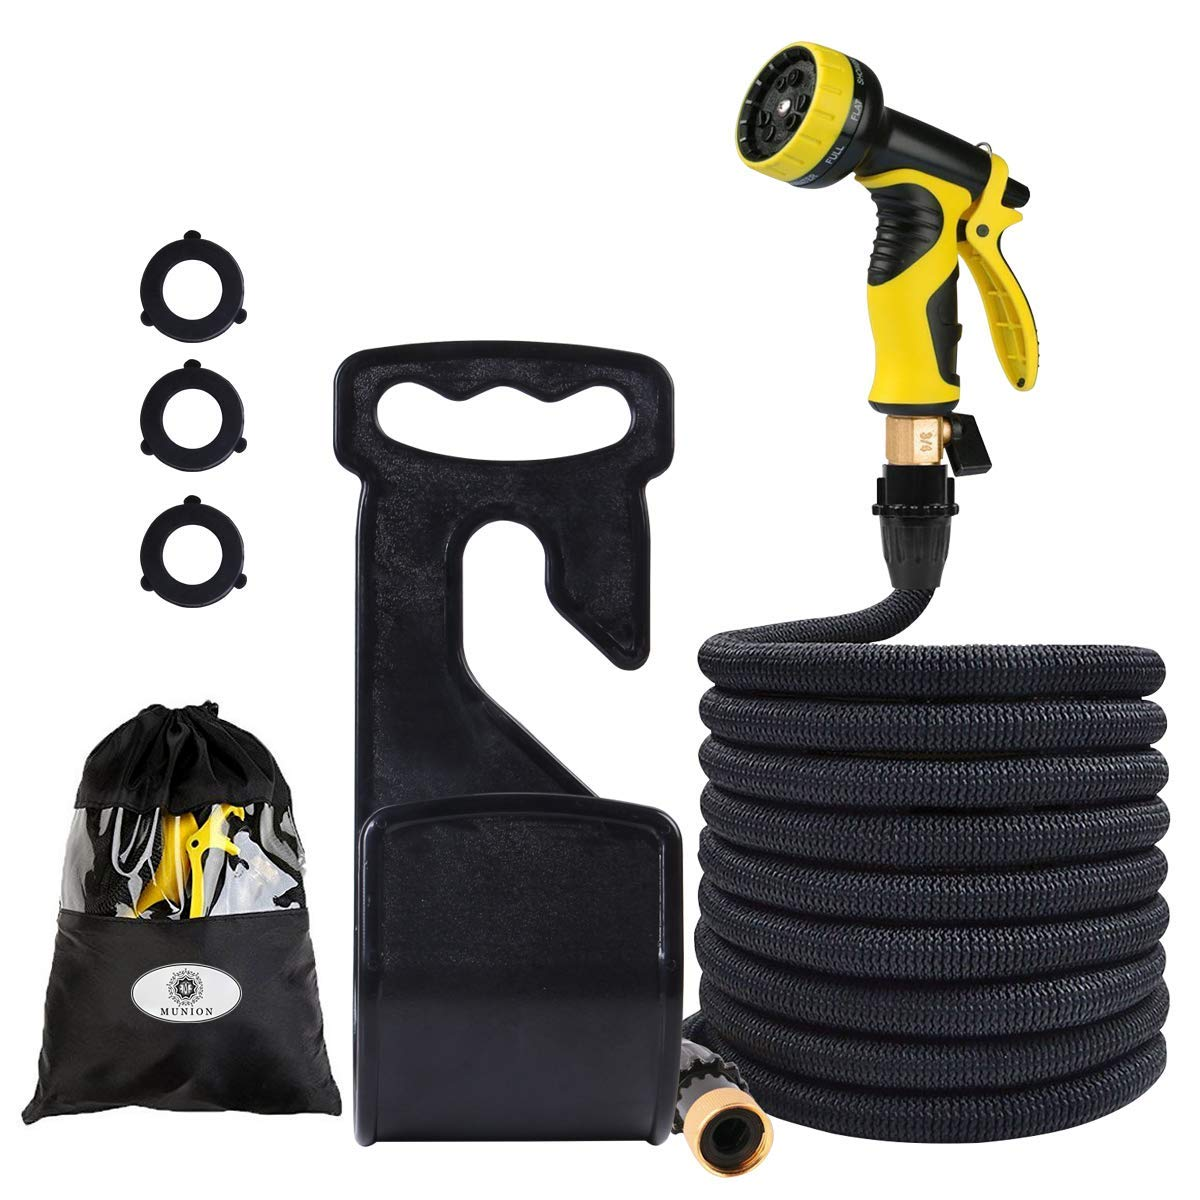 MUNION Expandable Garden Hose 75 FT Lightweight Flexible Water Hose 9 Mode Spray Nozzle High Pressure Extra Strength Fabric Double Latex Core 3/4 Solid Brass Fittings with Storage Bag Hose Holder